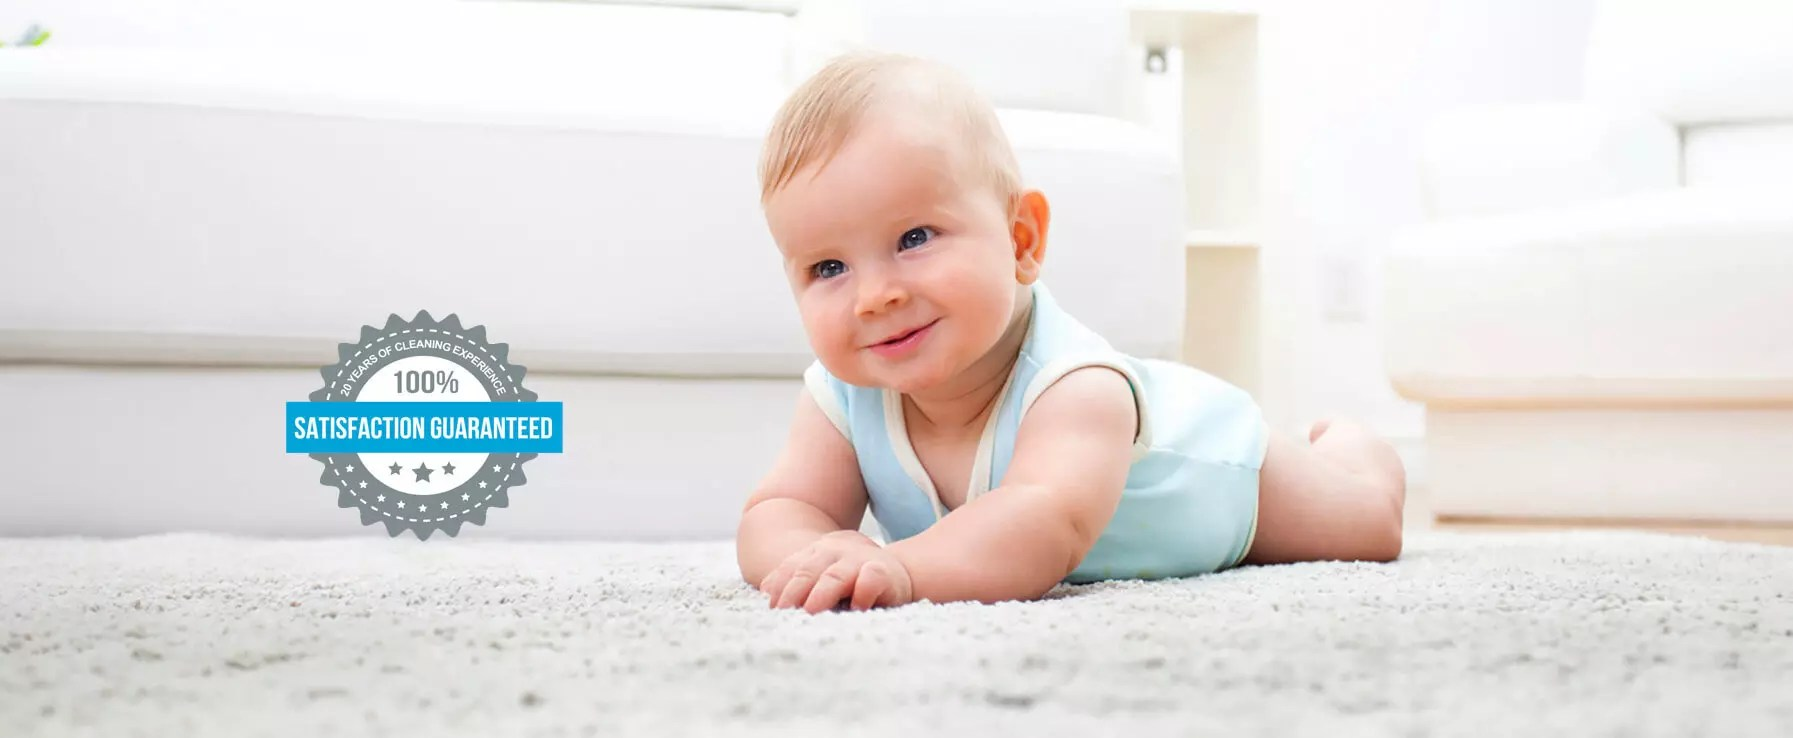 carpet cleaning services in cardiff baby on carpet